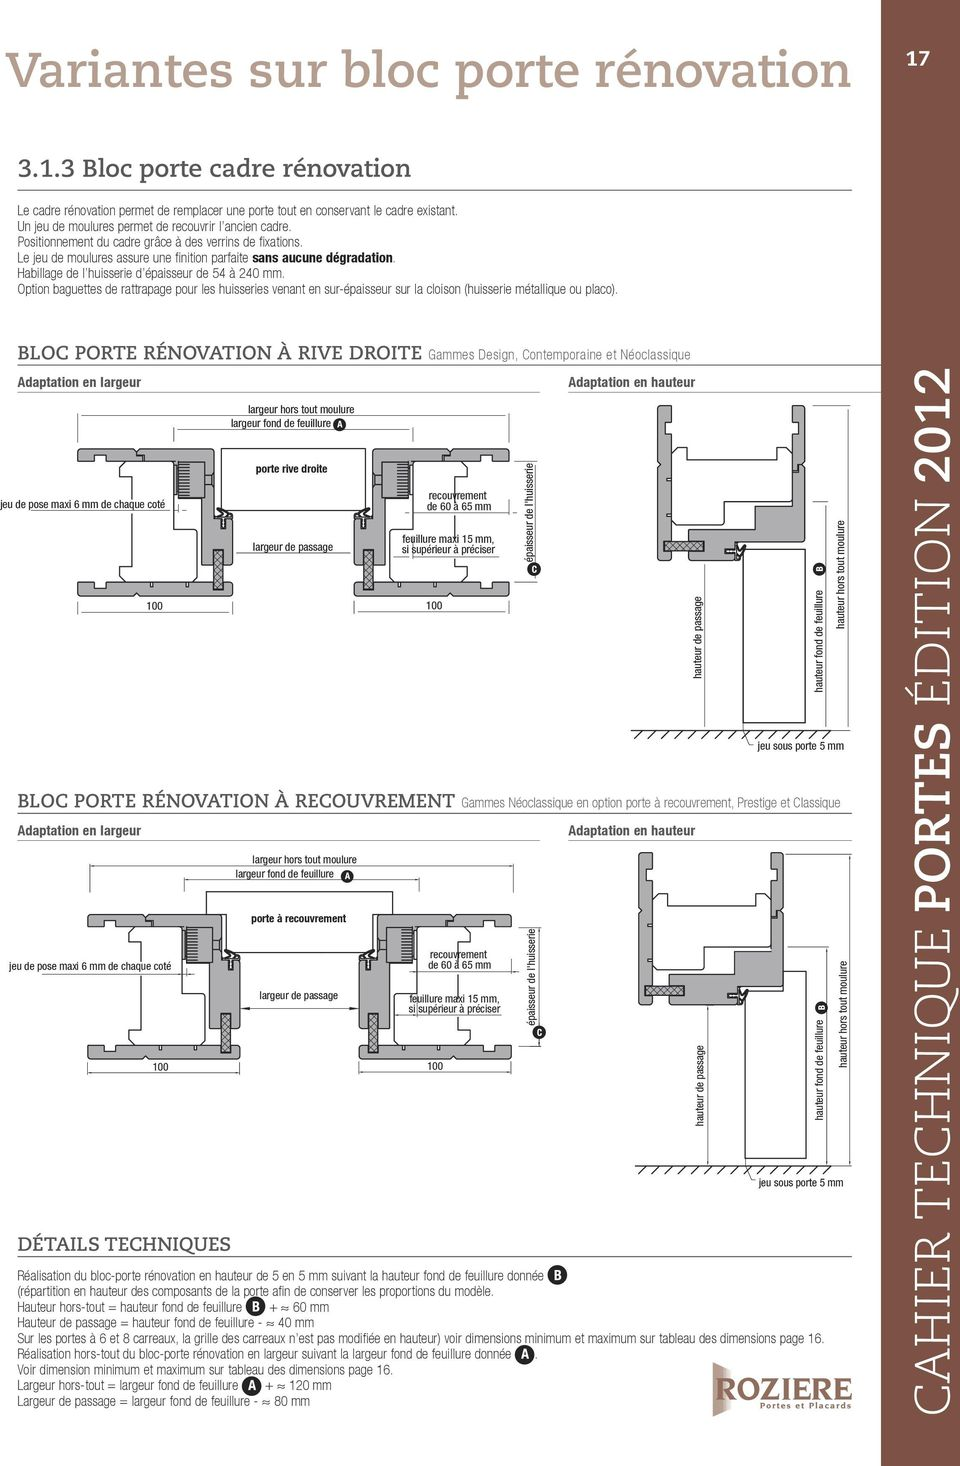 Standard et sur mesure cahier technique portes placards for Bloc porte renovation form